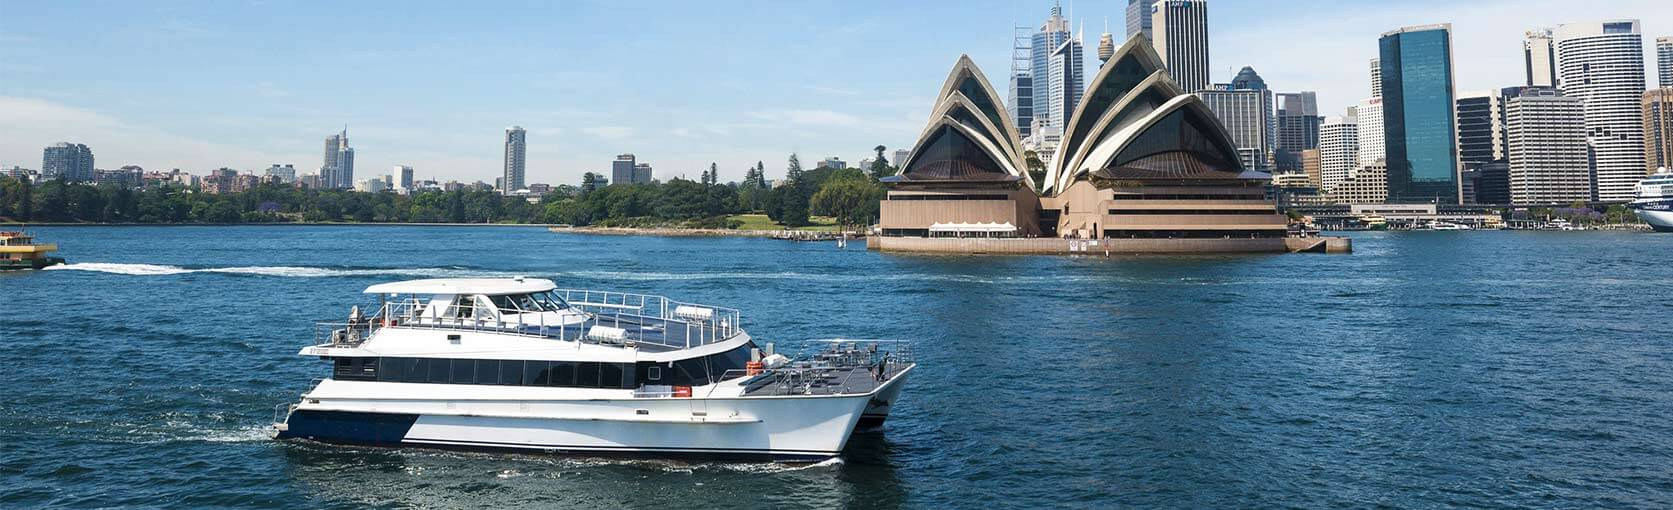 Sydney Harbour Luxury Cruise Bookings